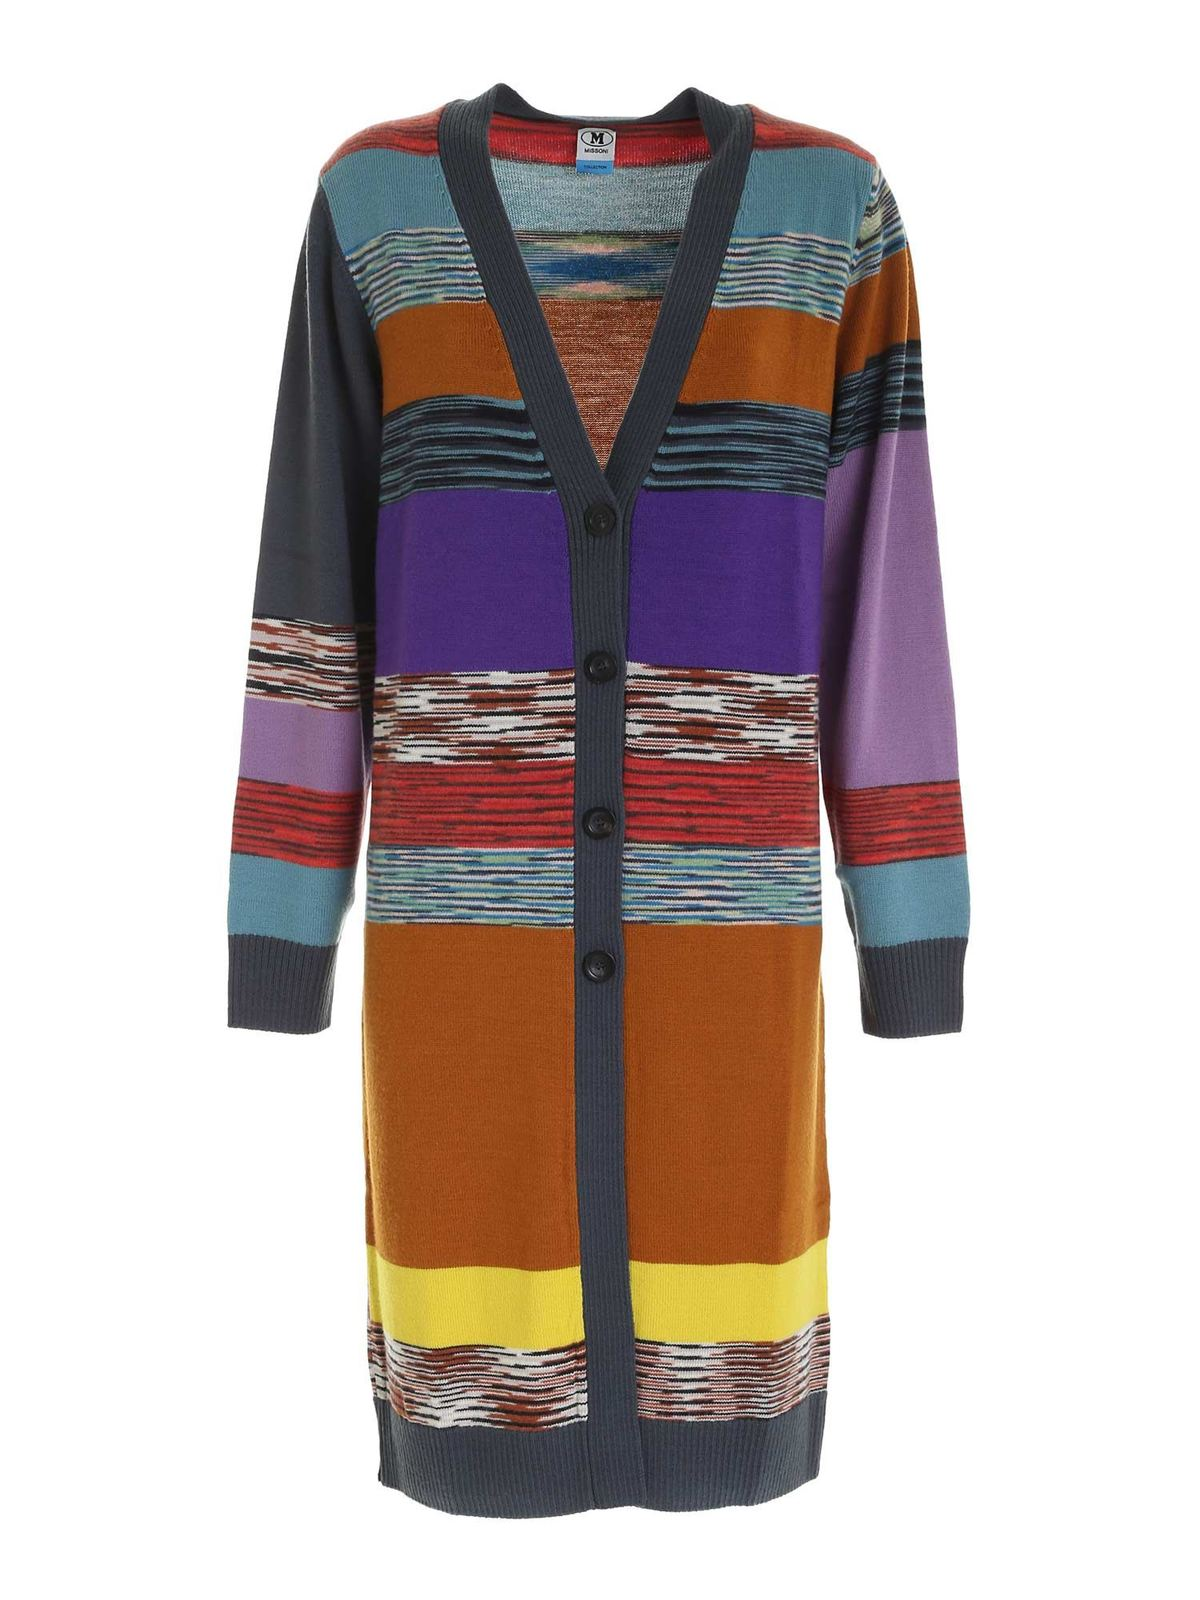 M Missoni STRIPED MULTICOLOR KNITTED CARDIGAN